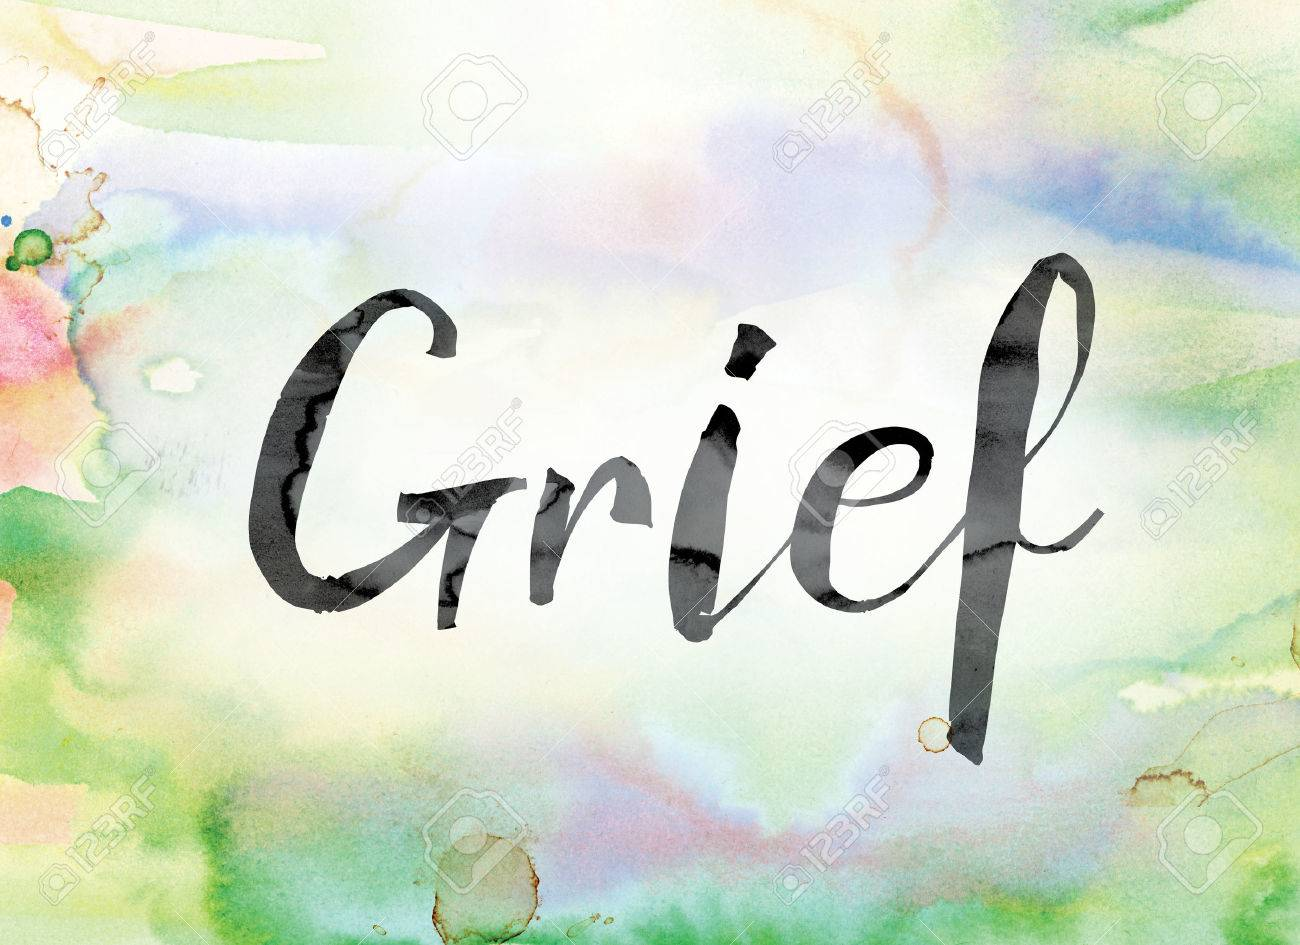 """The word """"Grief"""" painted in black ink over a colorful watercolor washed background concept and theme. - 64651324"""